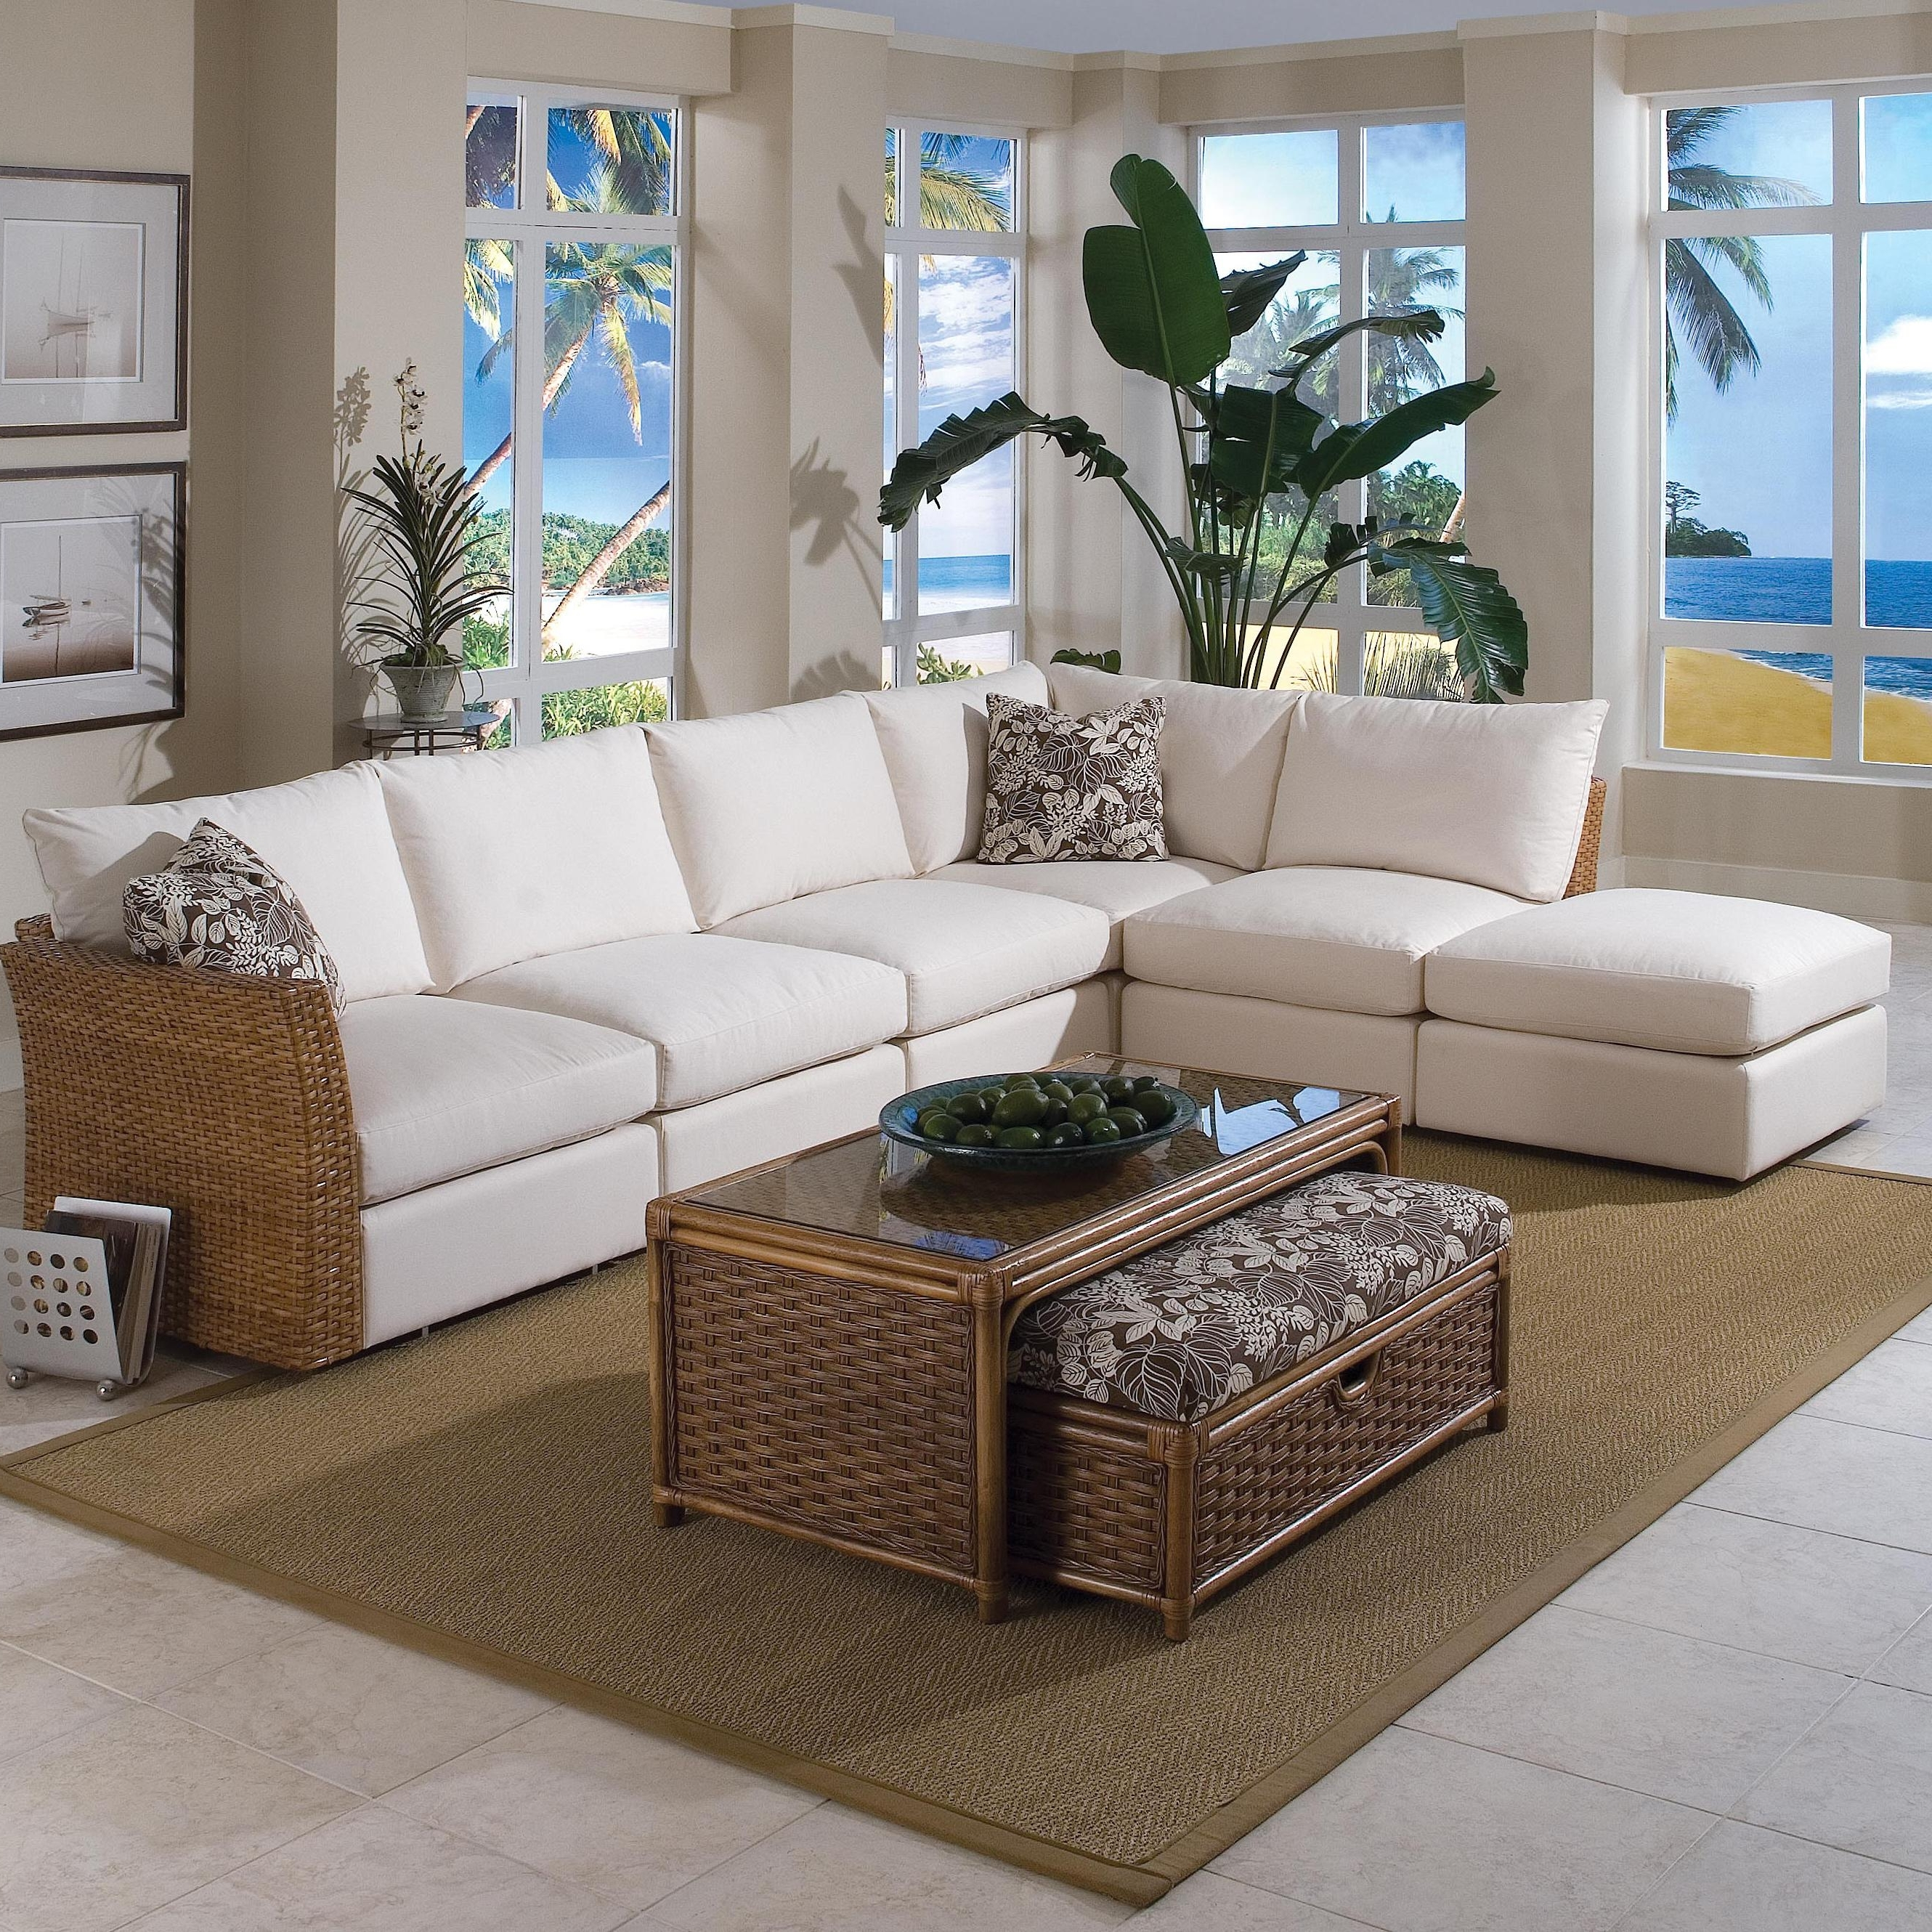 Well Liked Johnson City Tn Sectional Sofas Regarding Braxton Culler Grand Water Point Tropical Sectional Sofa With Two (View 8 of 20)